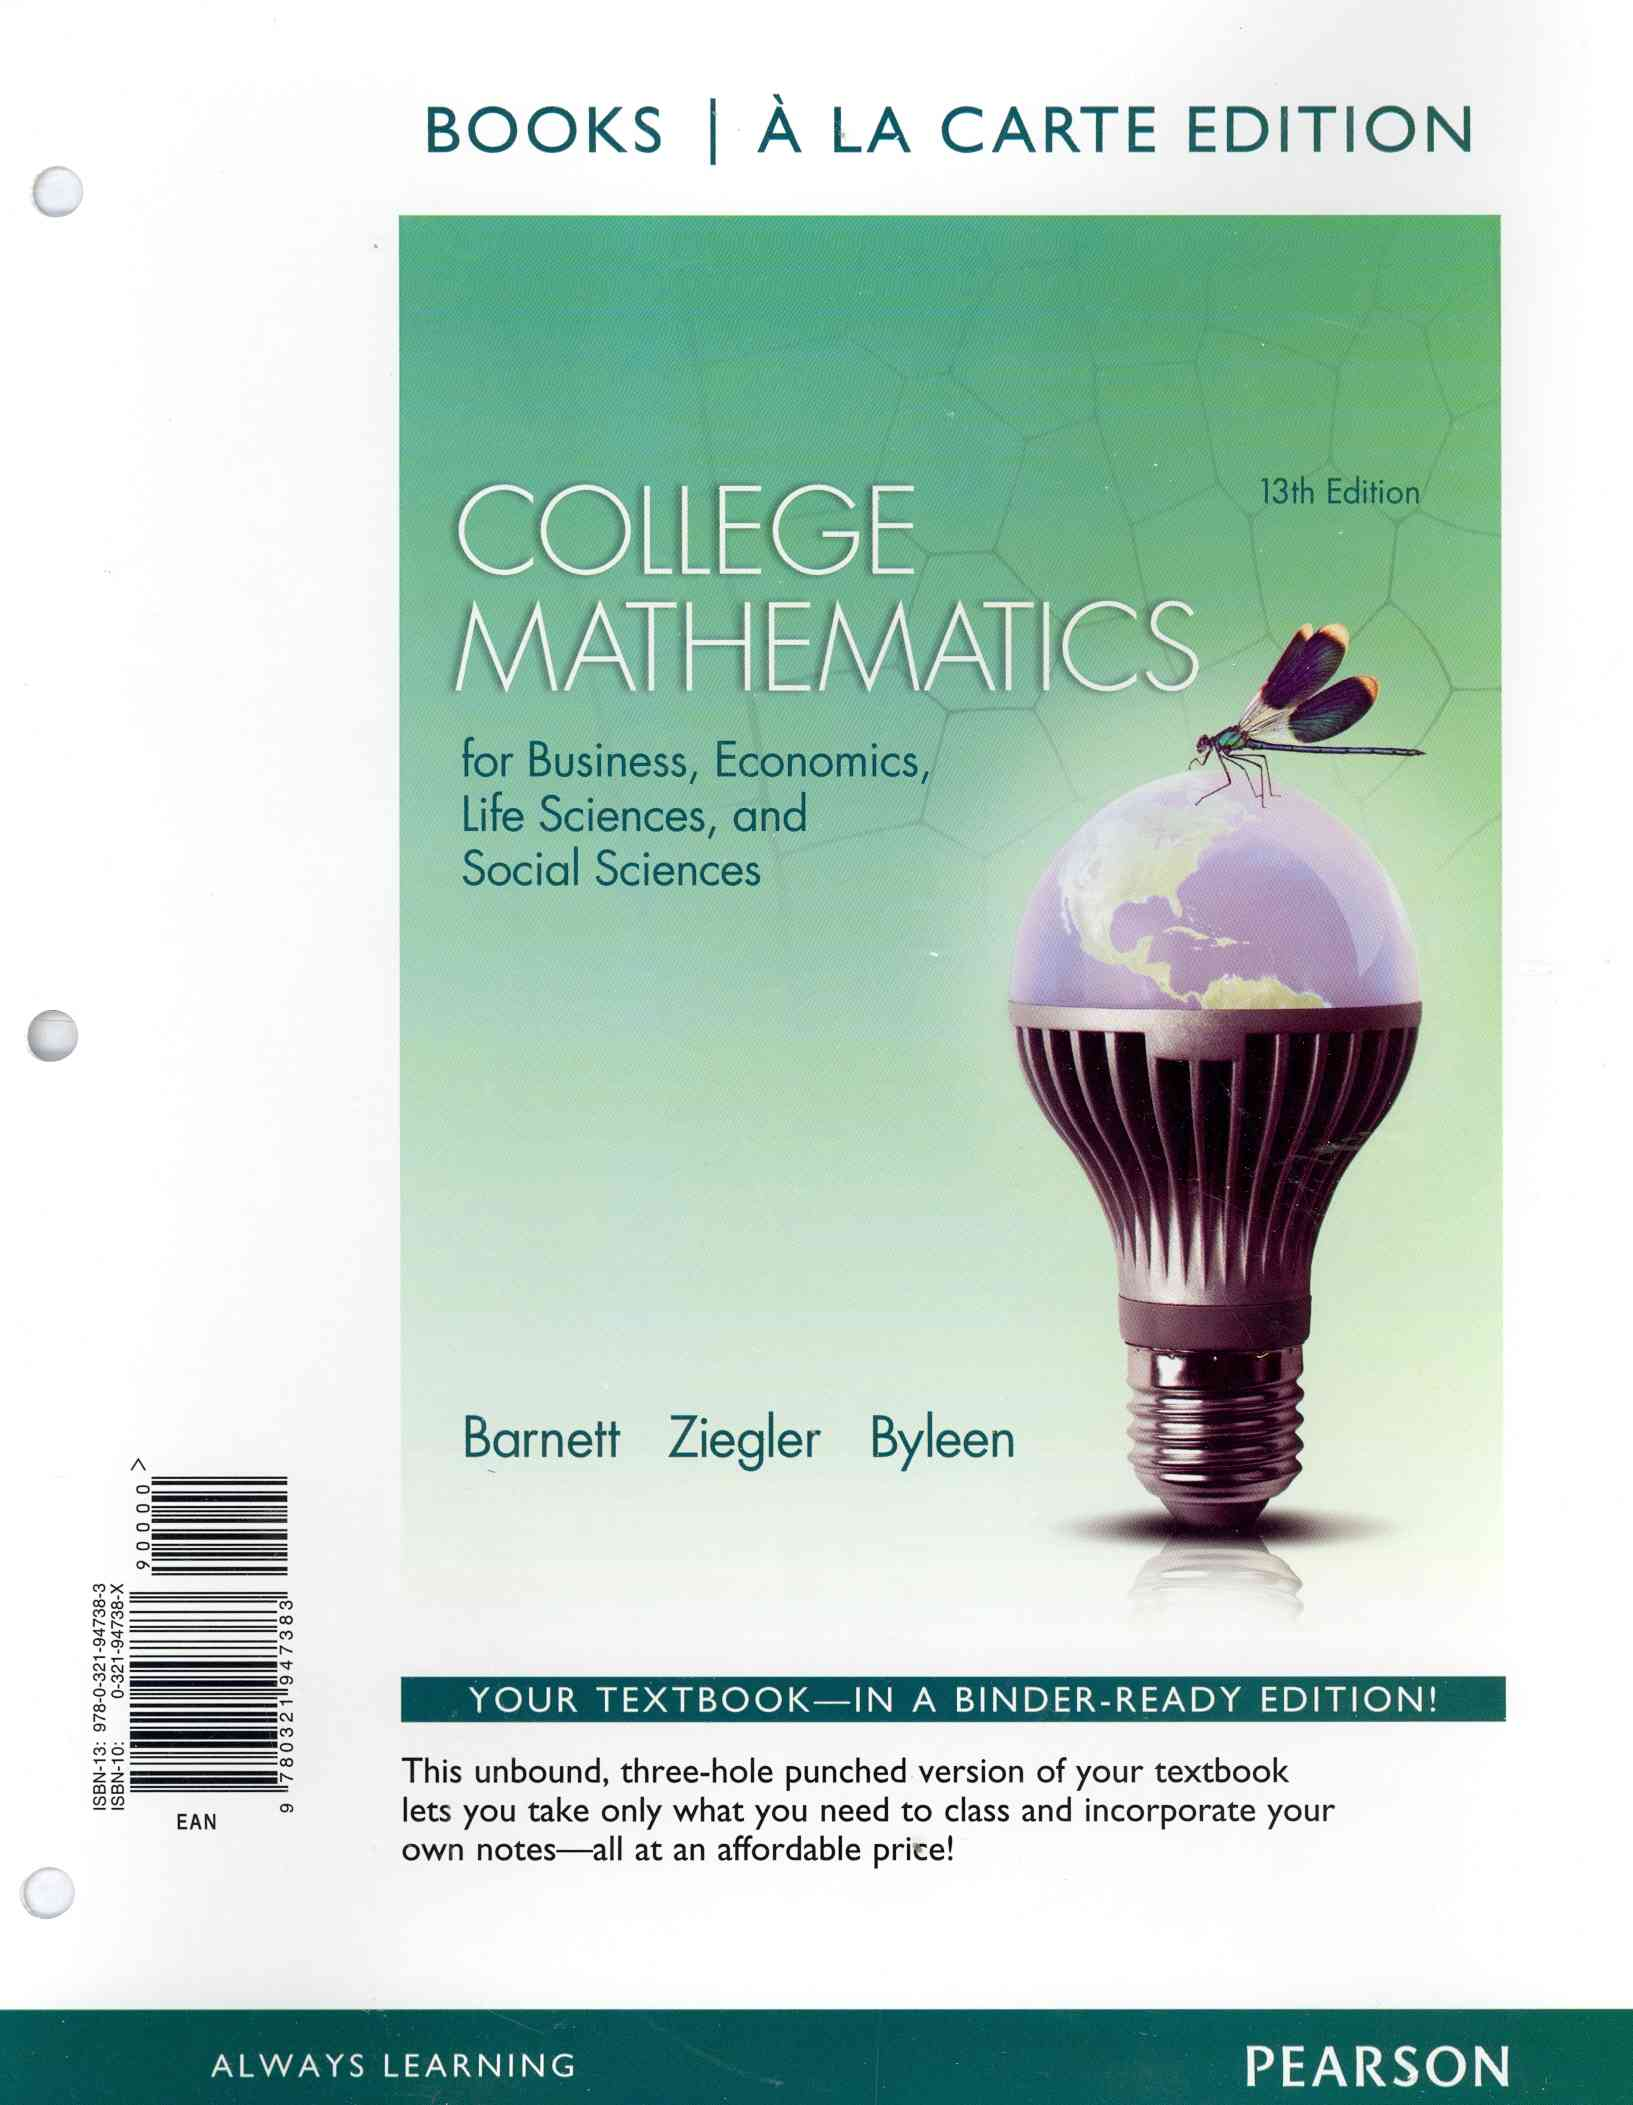 College Mathematics For Business Economics Life Sciences And 54